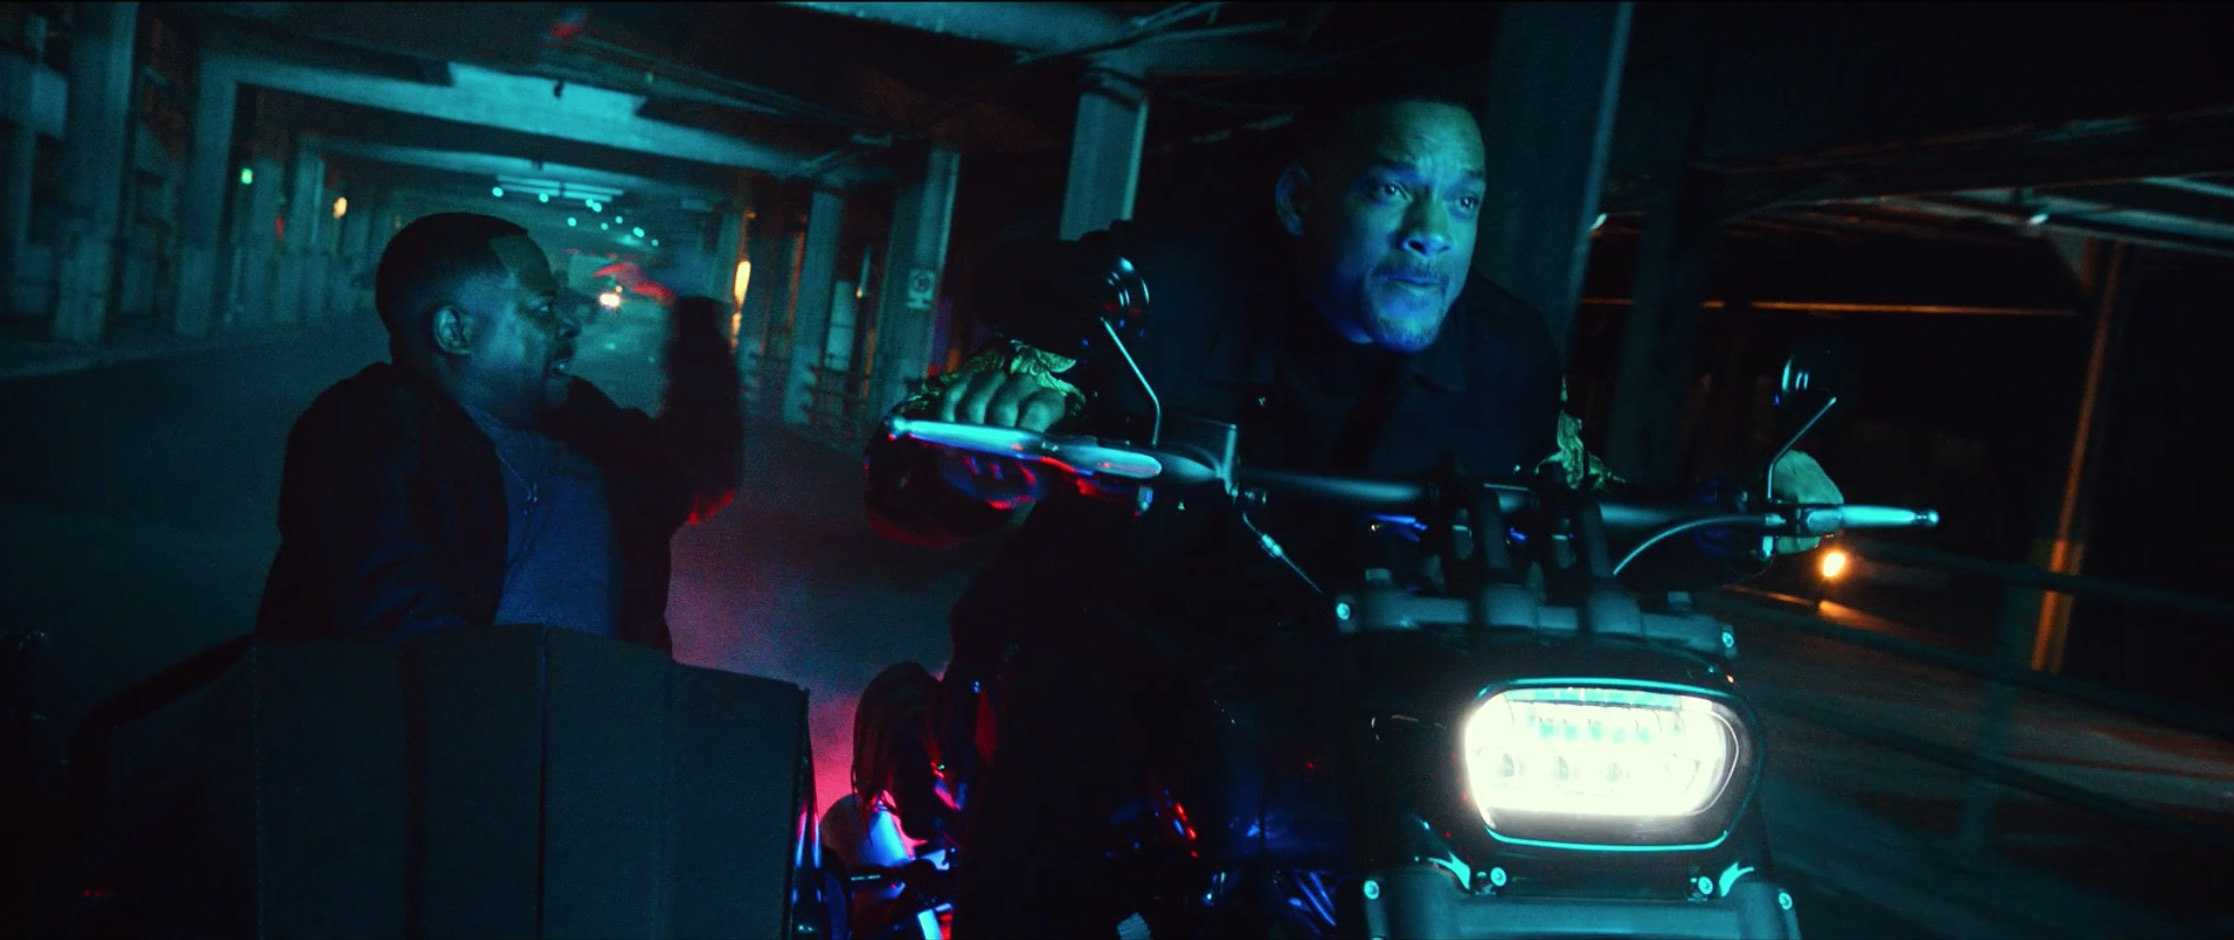 Bad Boys For Life will smith driving motorcycle dynamic action